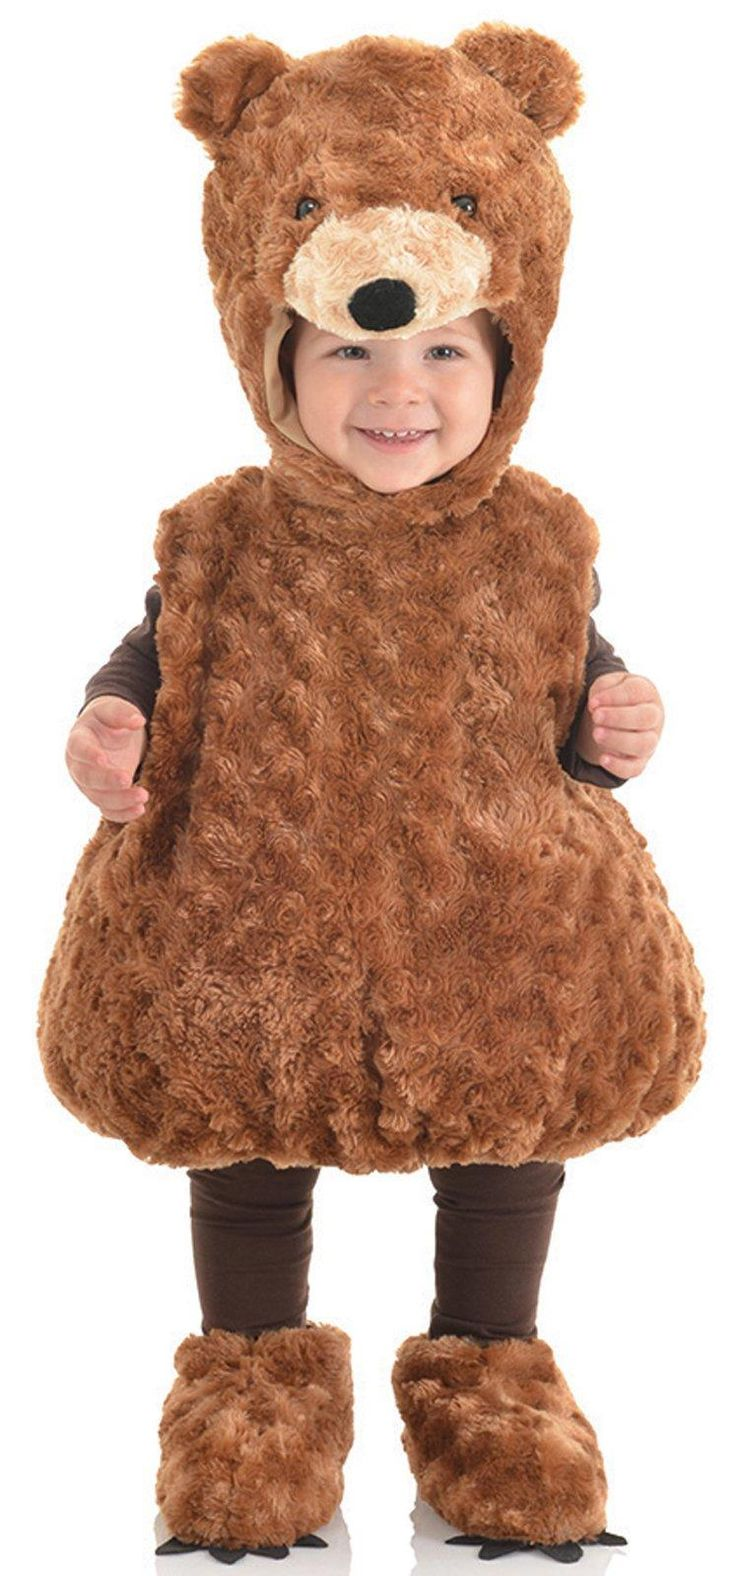 Teddy Bear Costume For Toddlers from Buycostumes.com